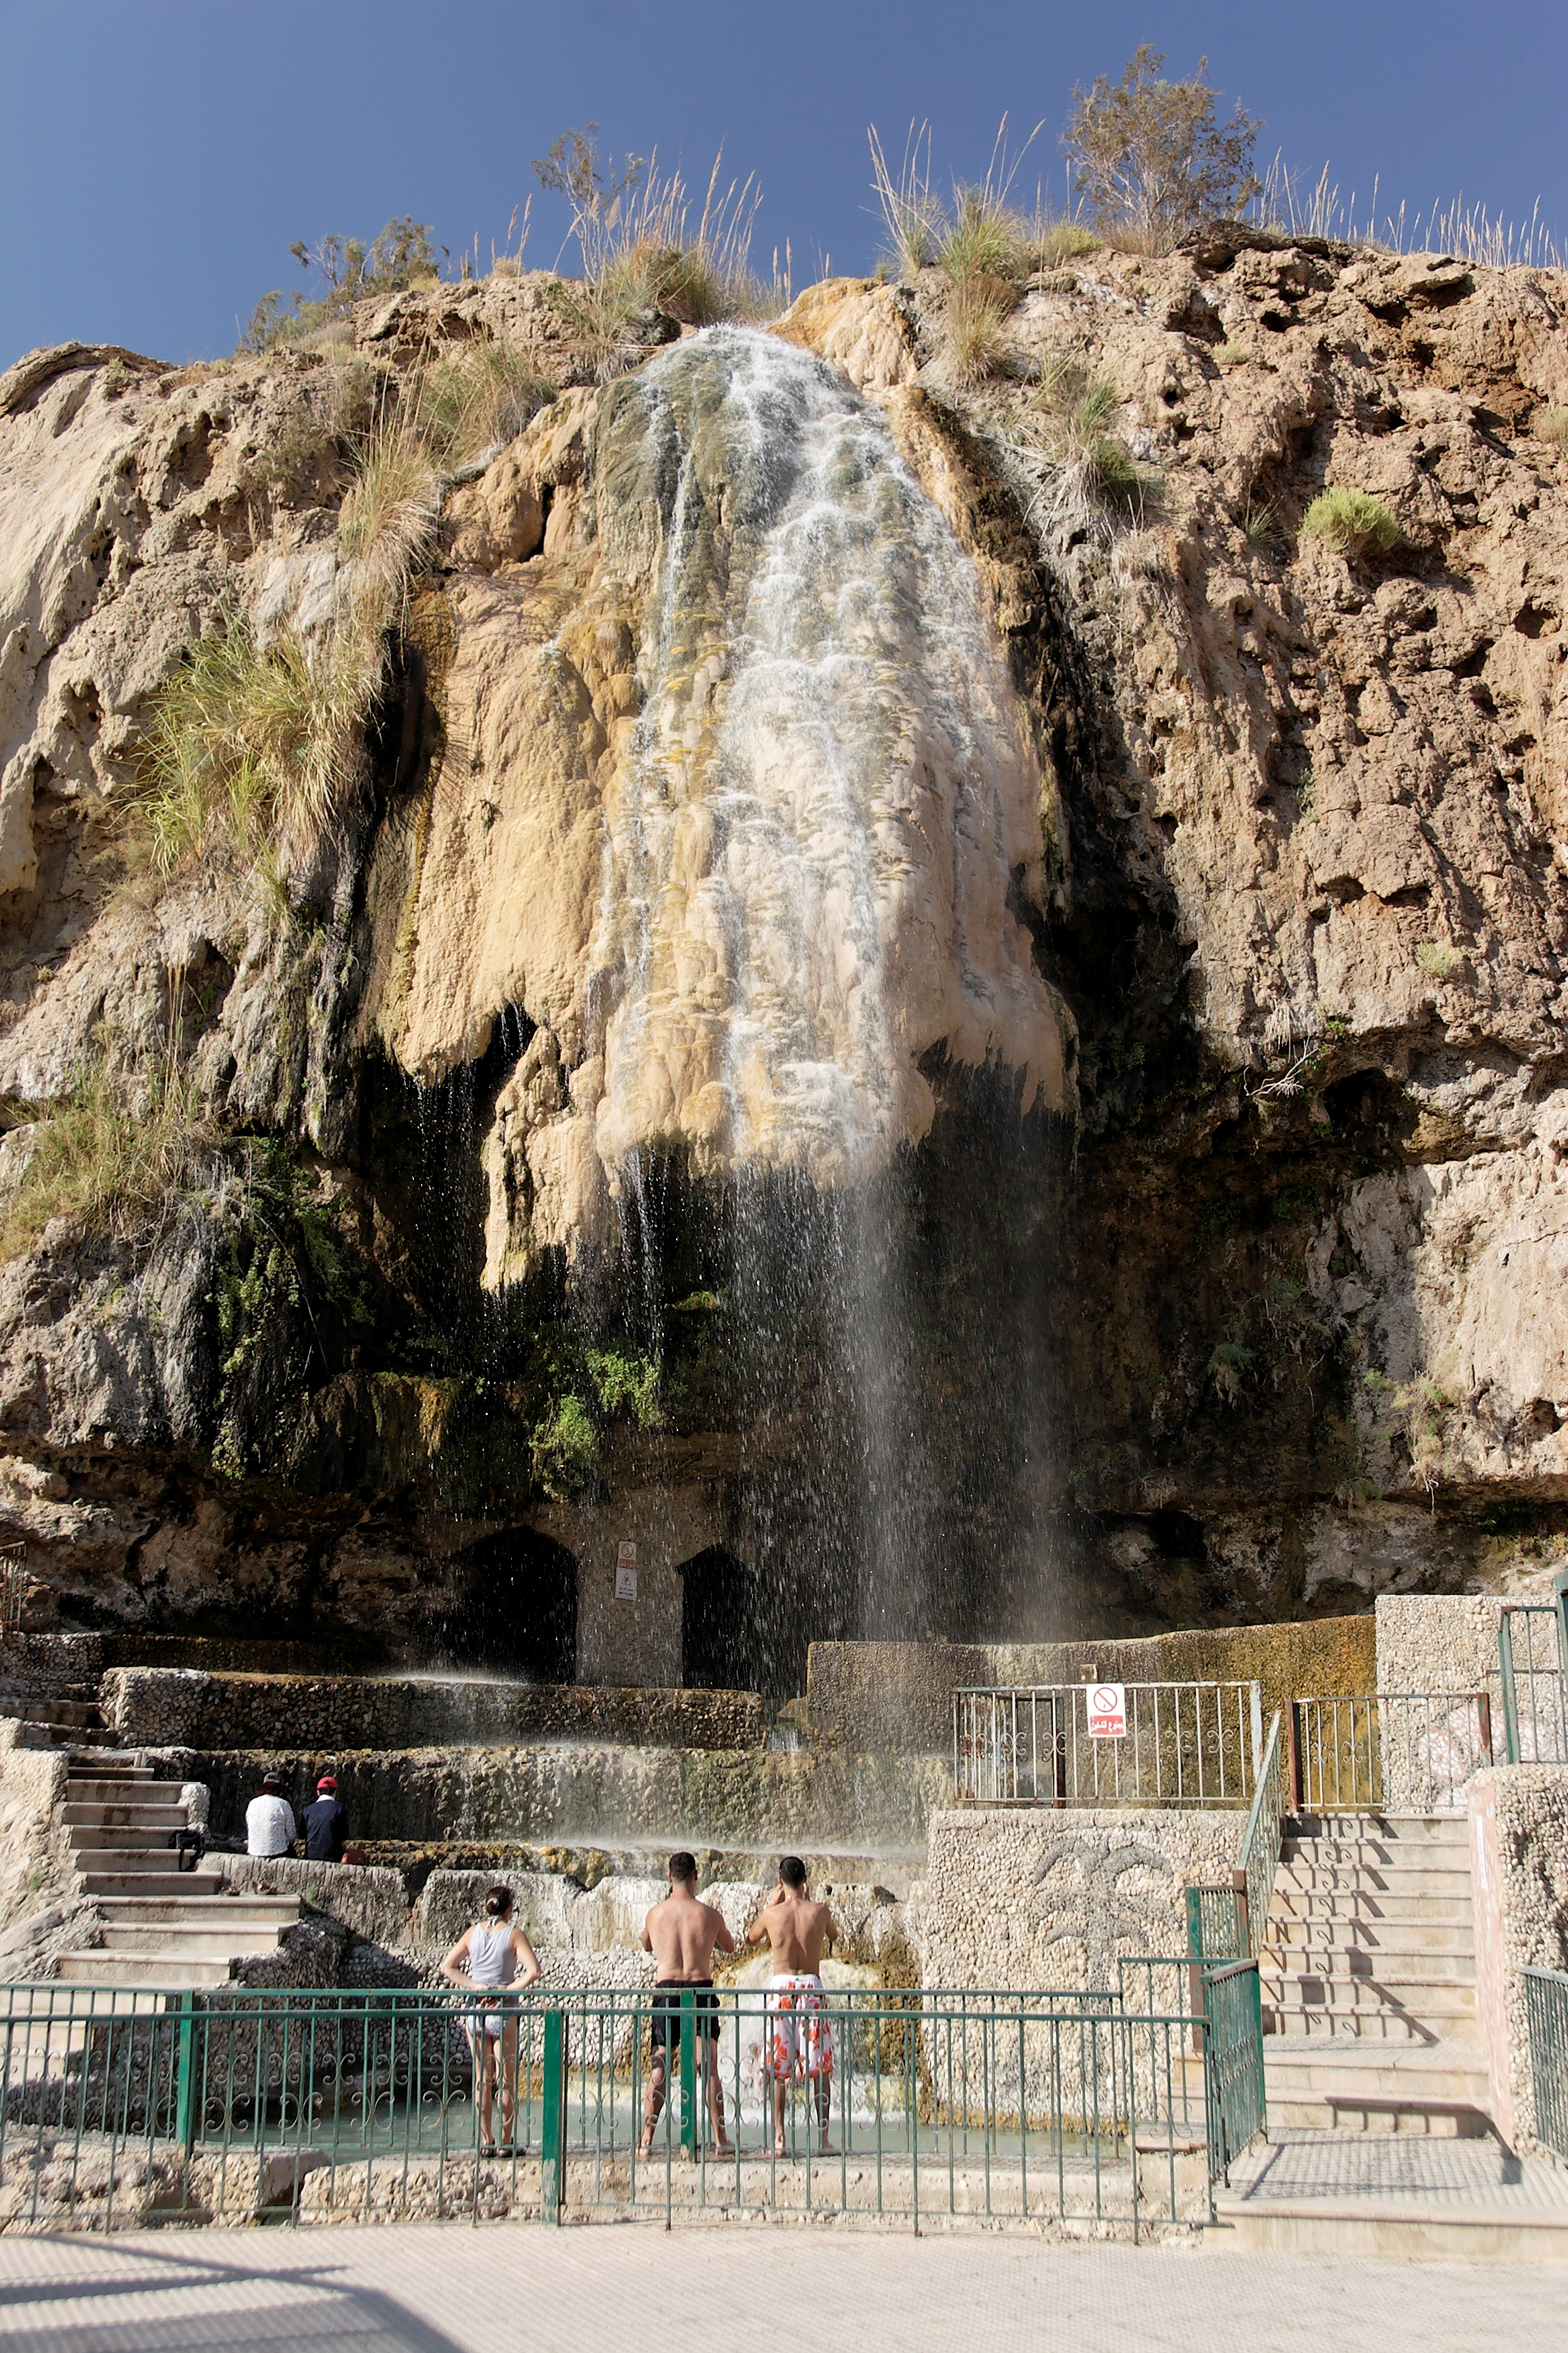 Waterfalls, Hammamat Ma'in Jordan.jpg - Waterfalls